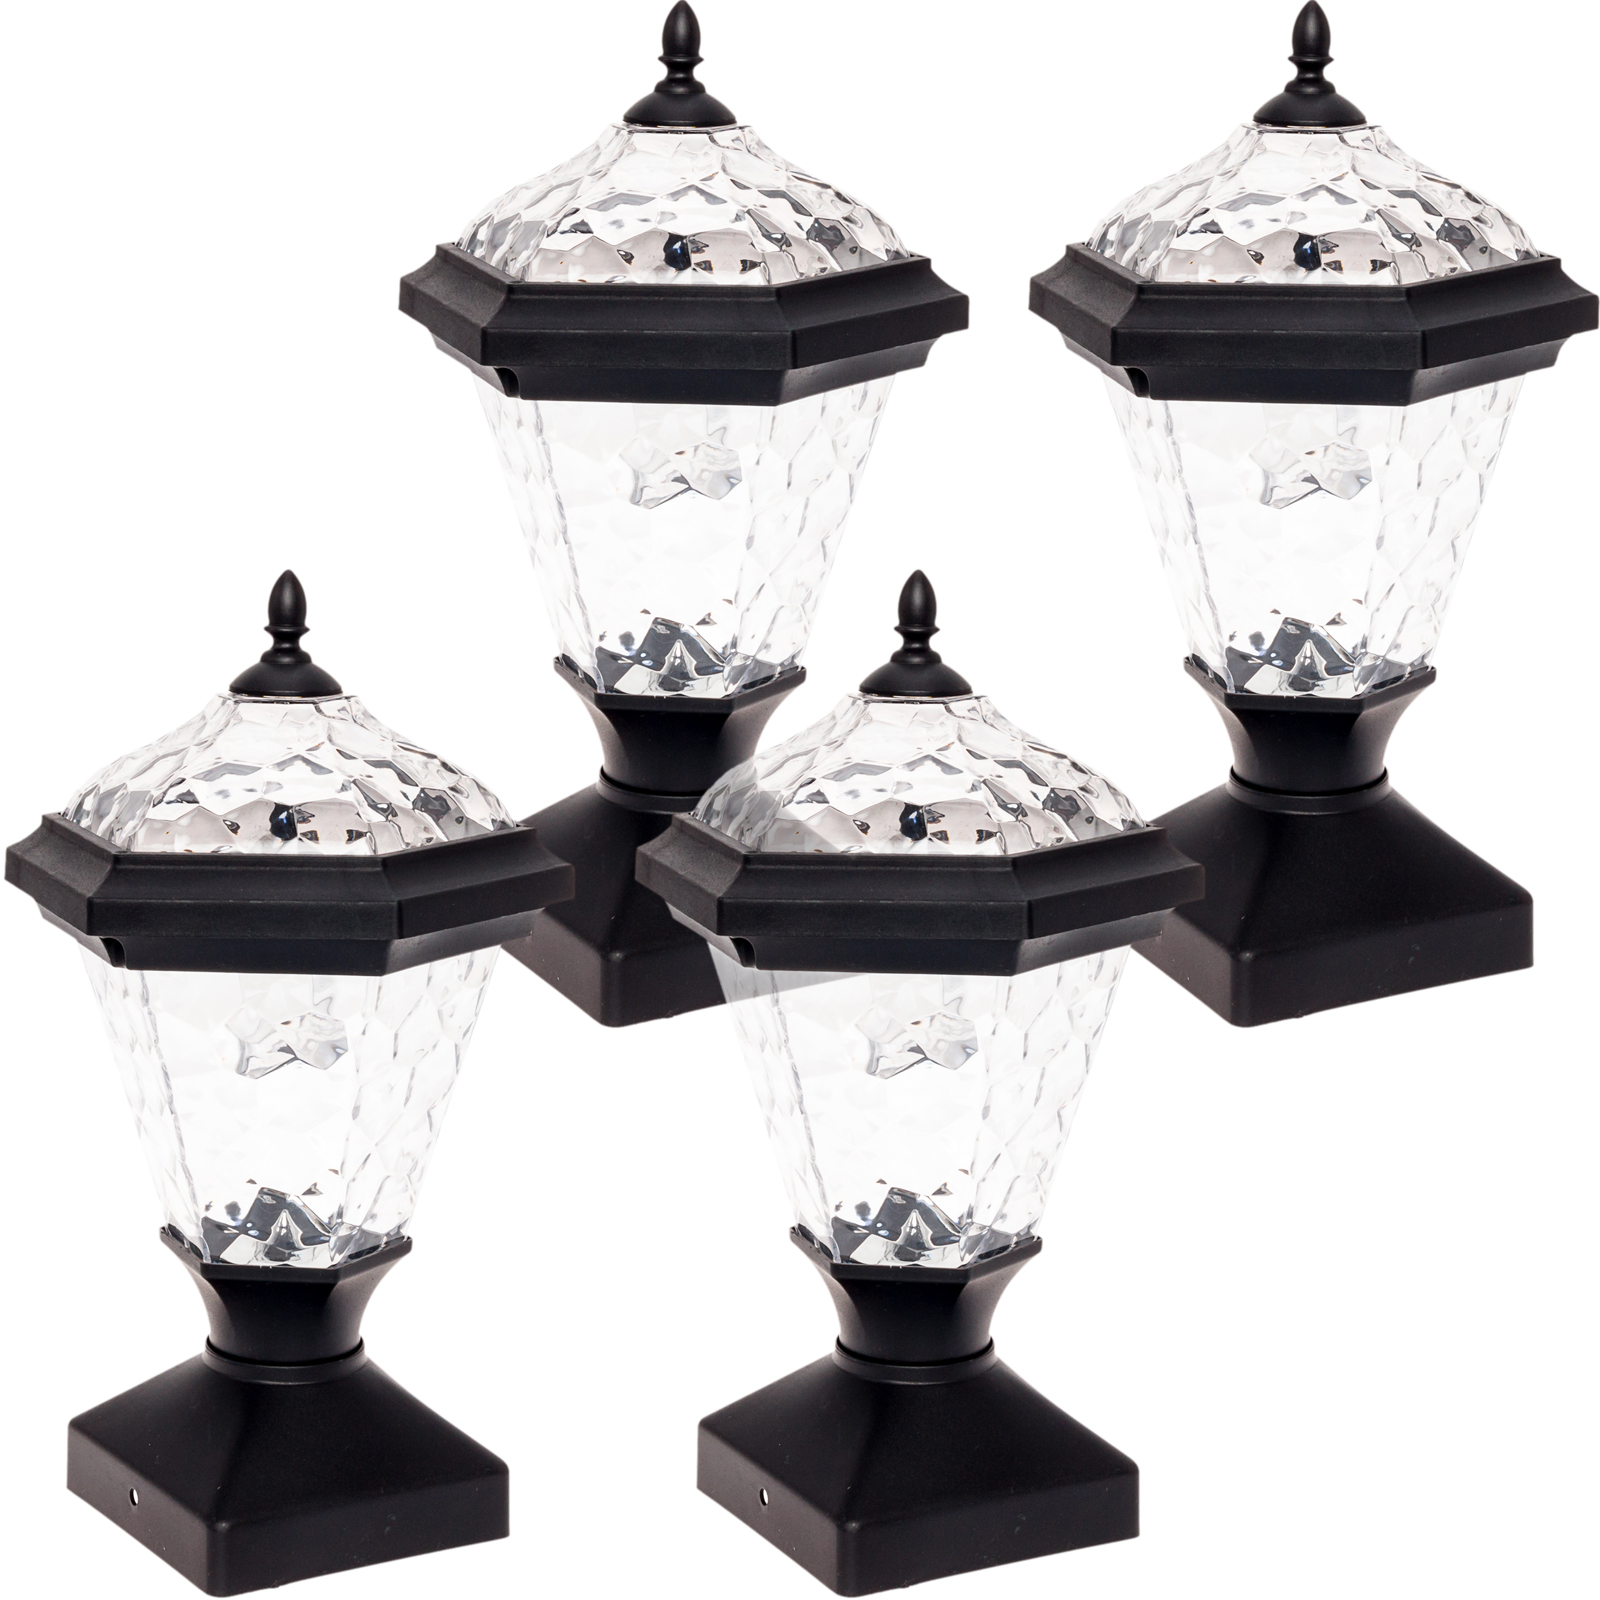 4 Pack GreenLighting White Adonia Solar Post Light for 4 x 4 Nominal Wood Posts